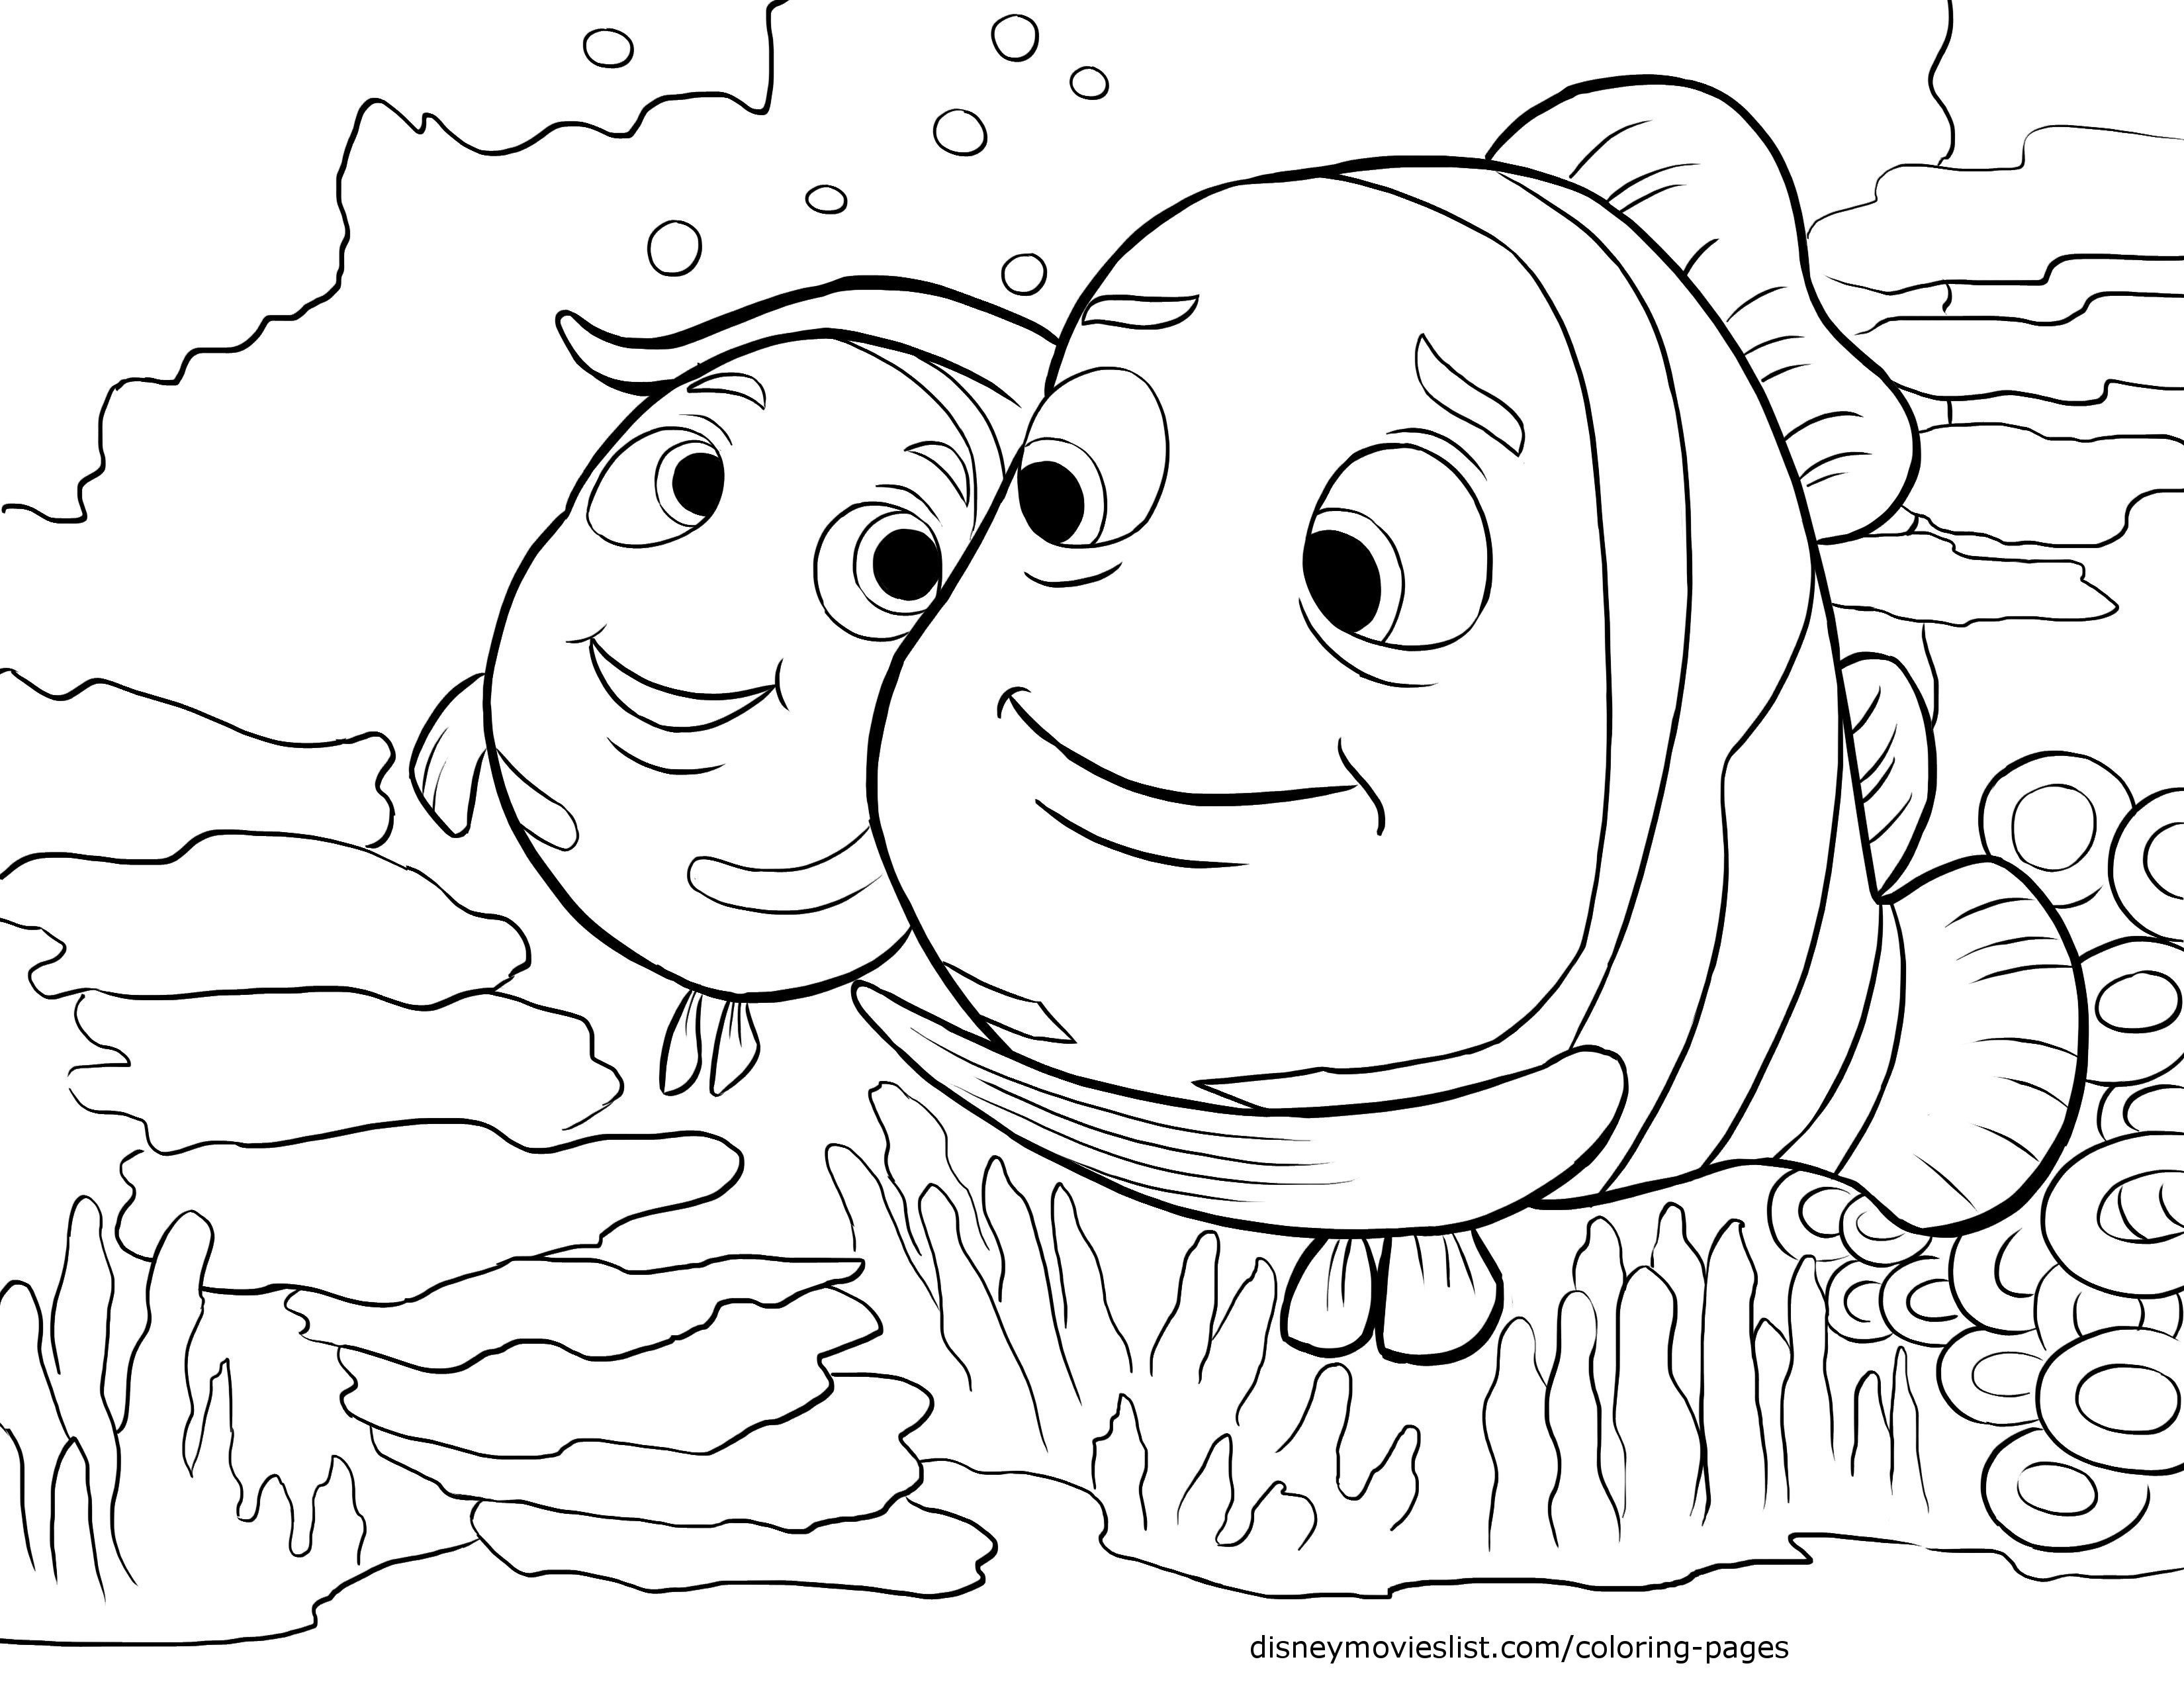 Findet Nemo Ausmalbilder Genial Lovely Finding Dory Coloring Pages Image Inspirierend Findet Nemo Stock